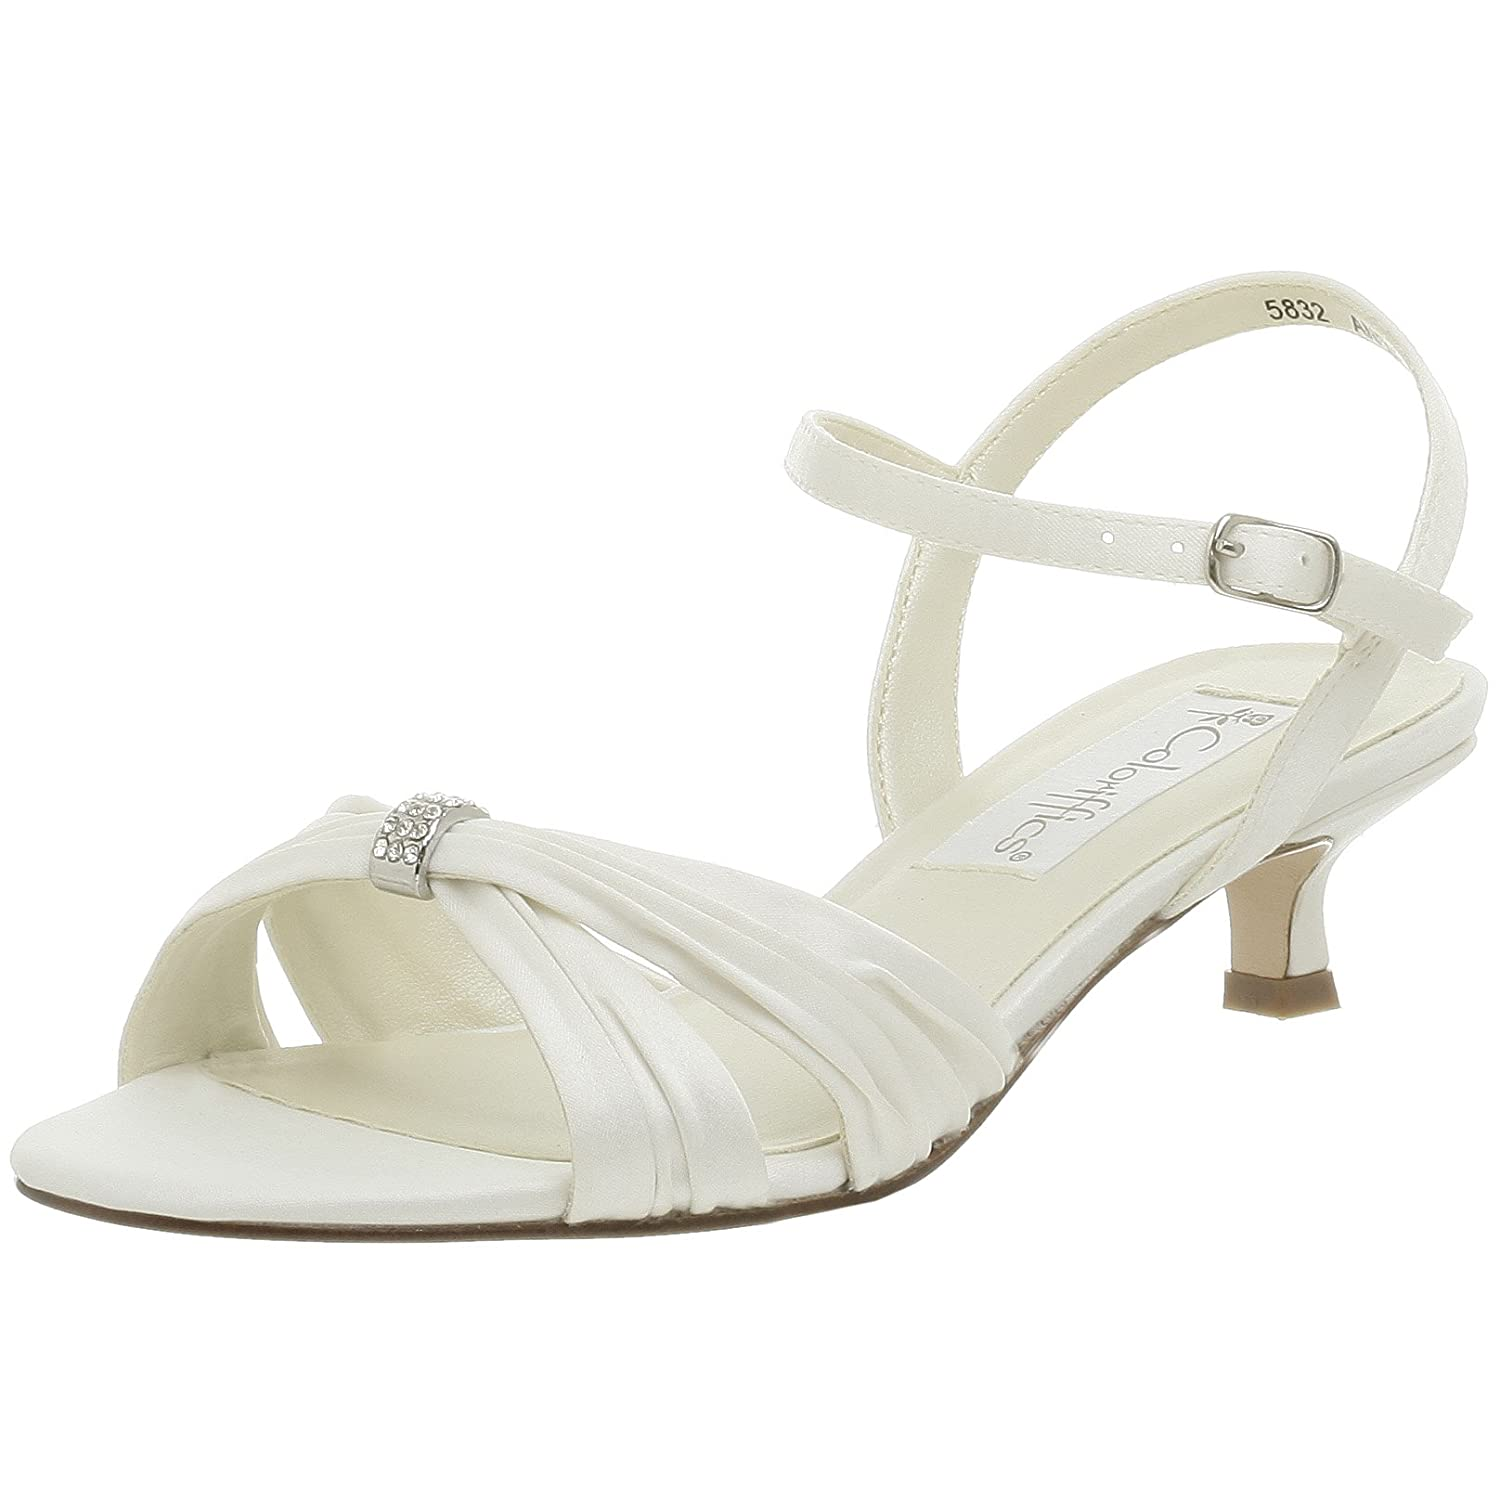 3cf007361e2 Coloriffics Andie Ivory Wedding Shoes (Standard or Wide Fit Available)  UK3-10 (UK8 WIDE FIT (US10 EU41))  Amazon.co.uk  Shoes   Bags